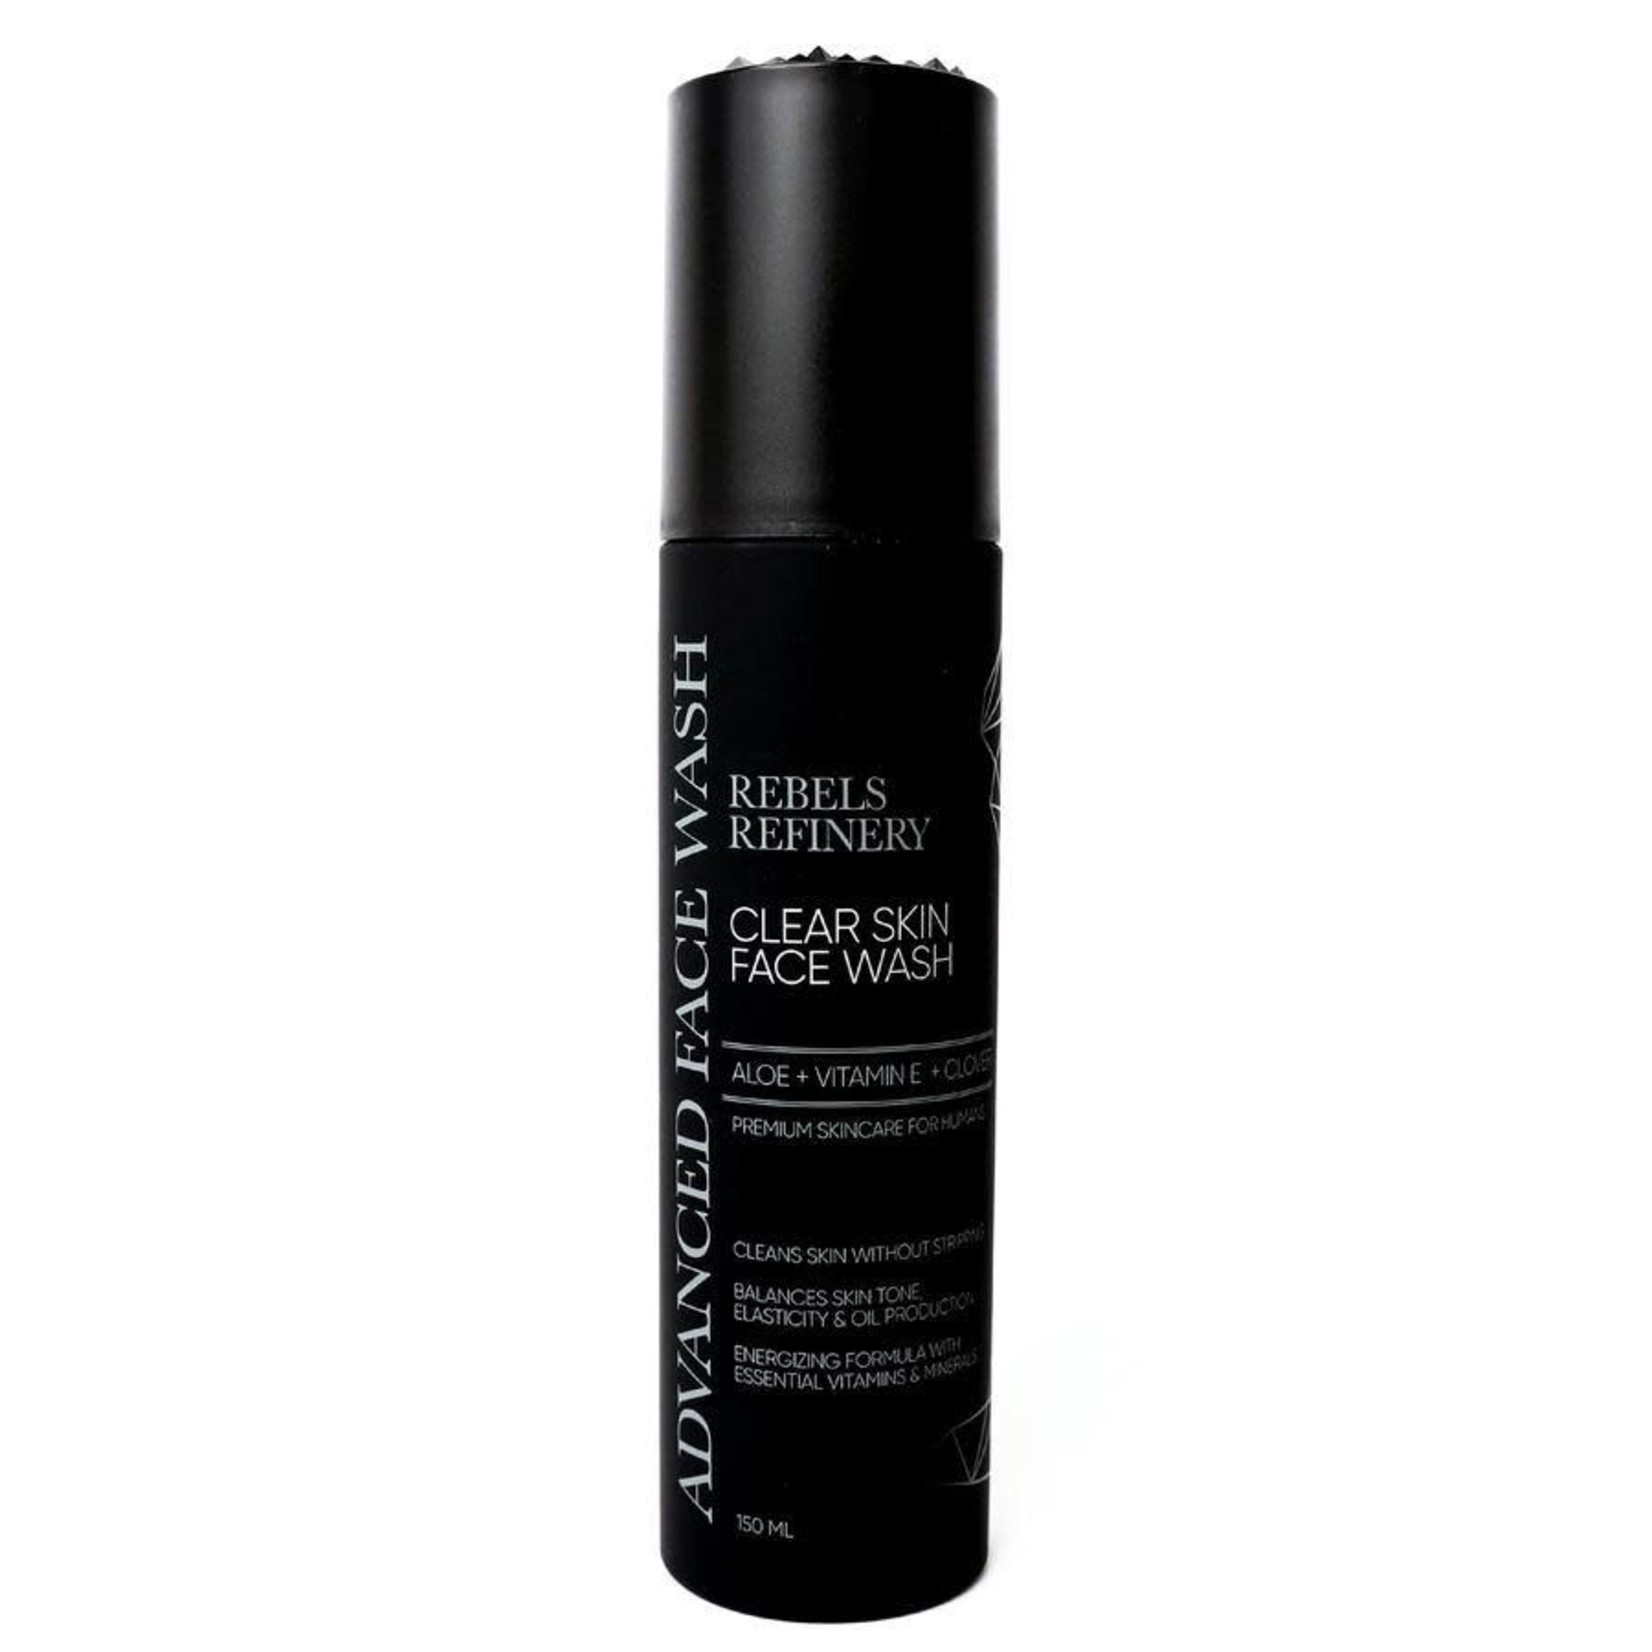 REBELS REFINERY CLEAR SKIN FACE WASH